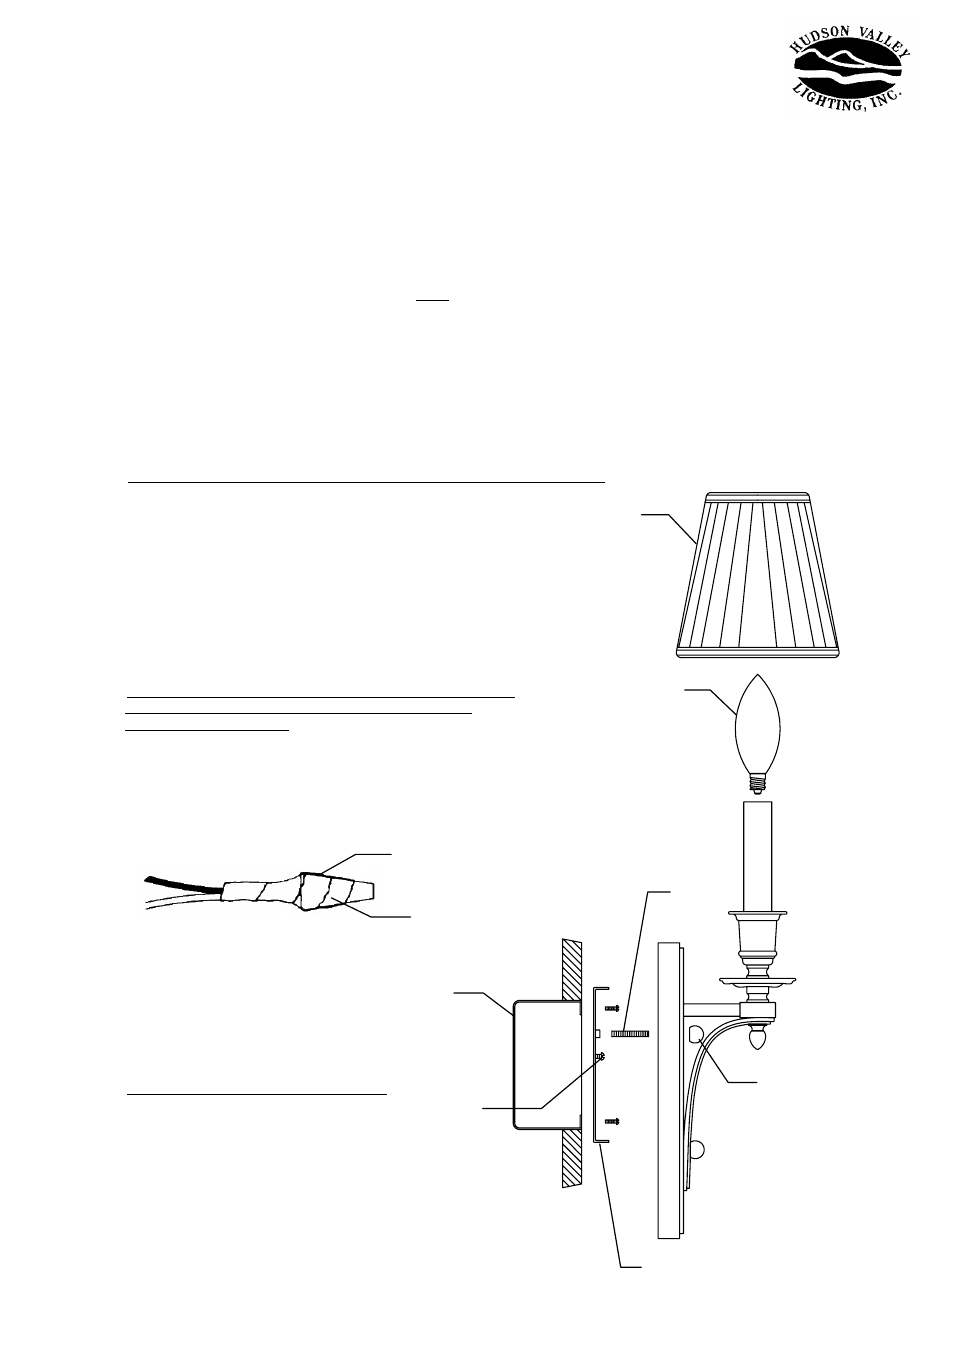 hight resolution of electrical fixture wiring diagram black to black